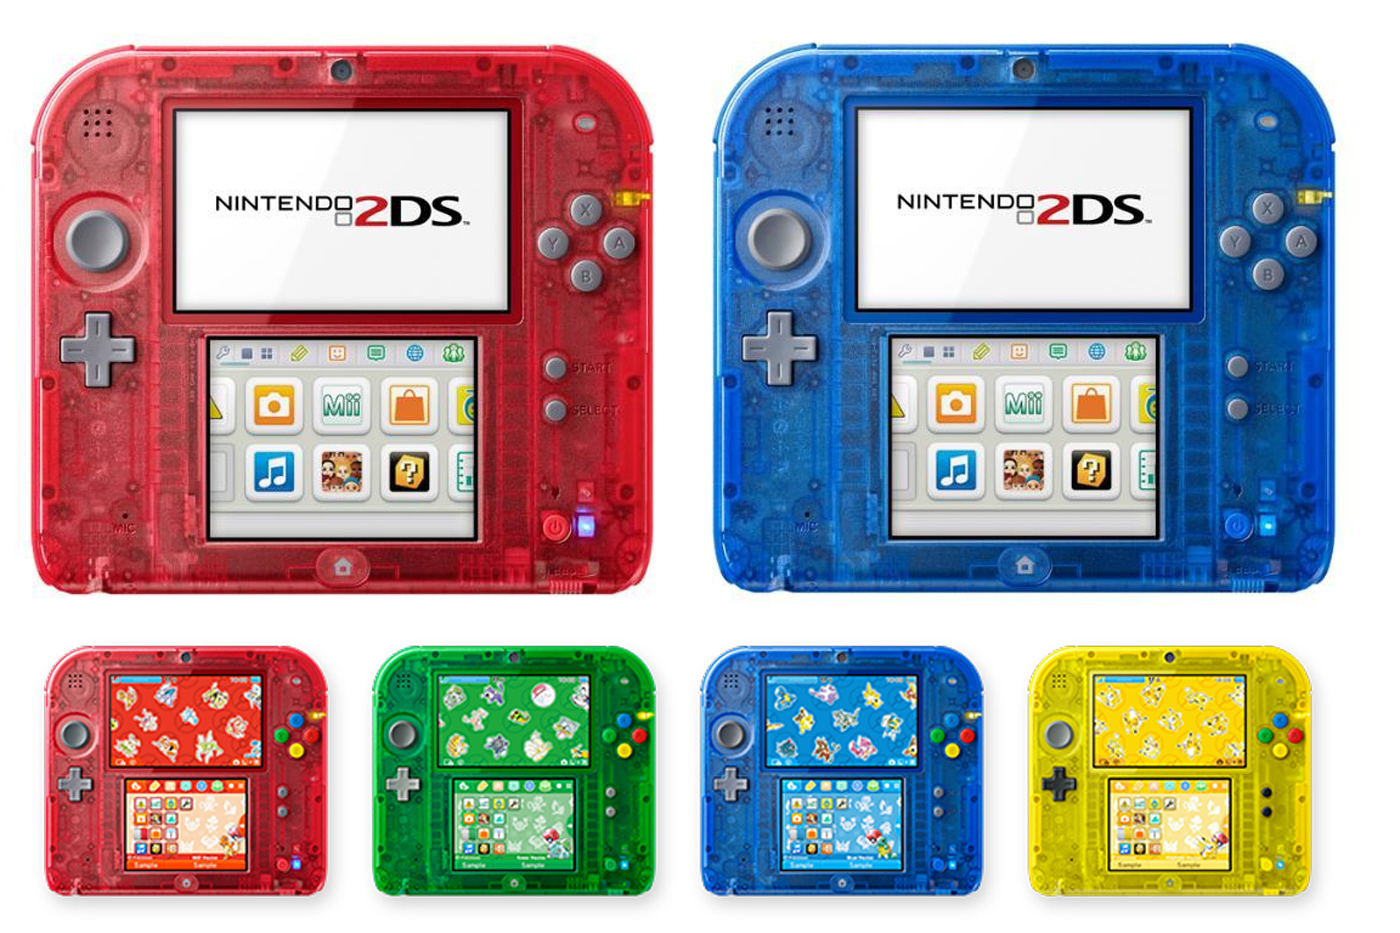 Japan gets Nintendo's 2DS in limited-edition 'Pokemon' colors